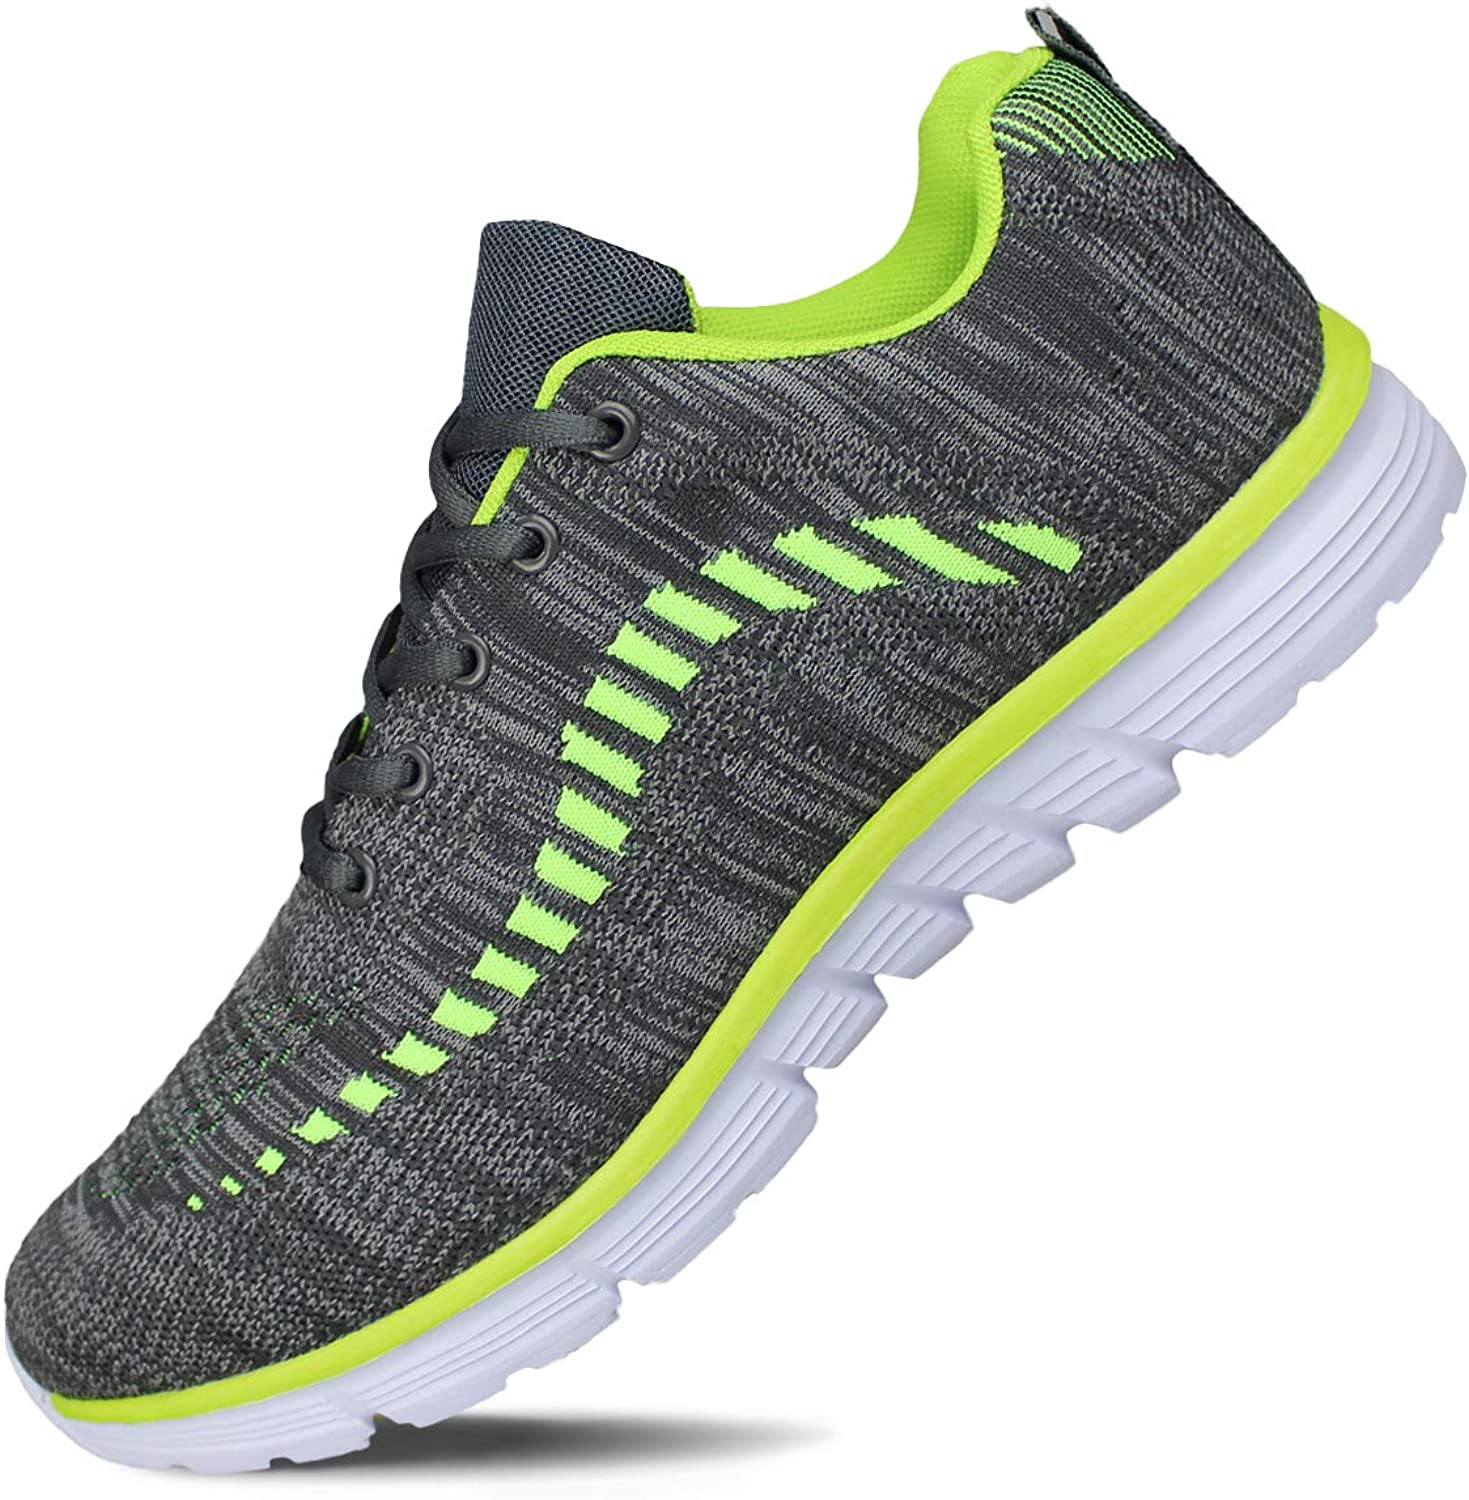 Hawkwell Men's Knit Running shoes Breathable Lightweight Athletic Tennis Walking Gym shoes